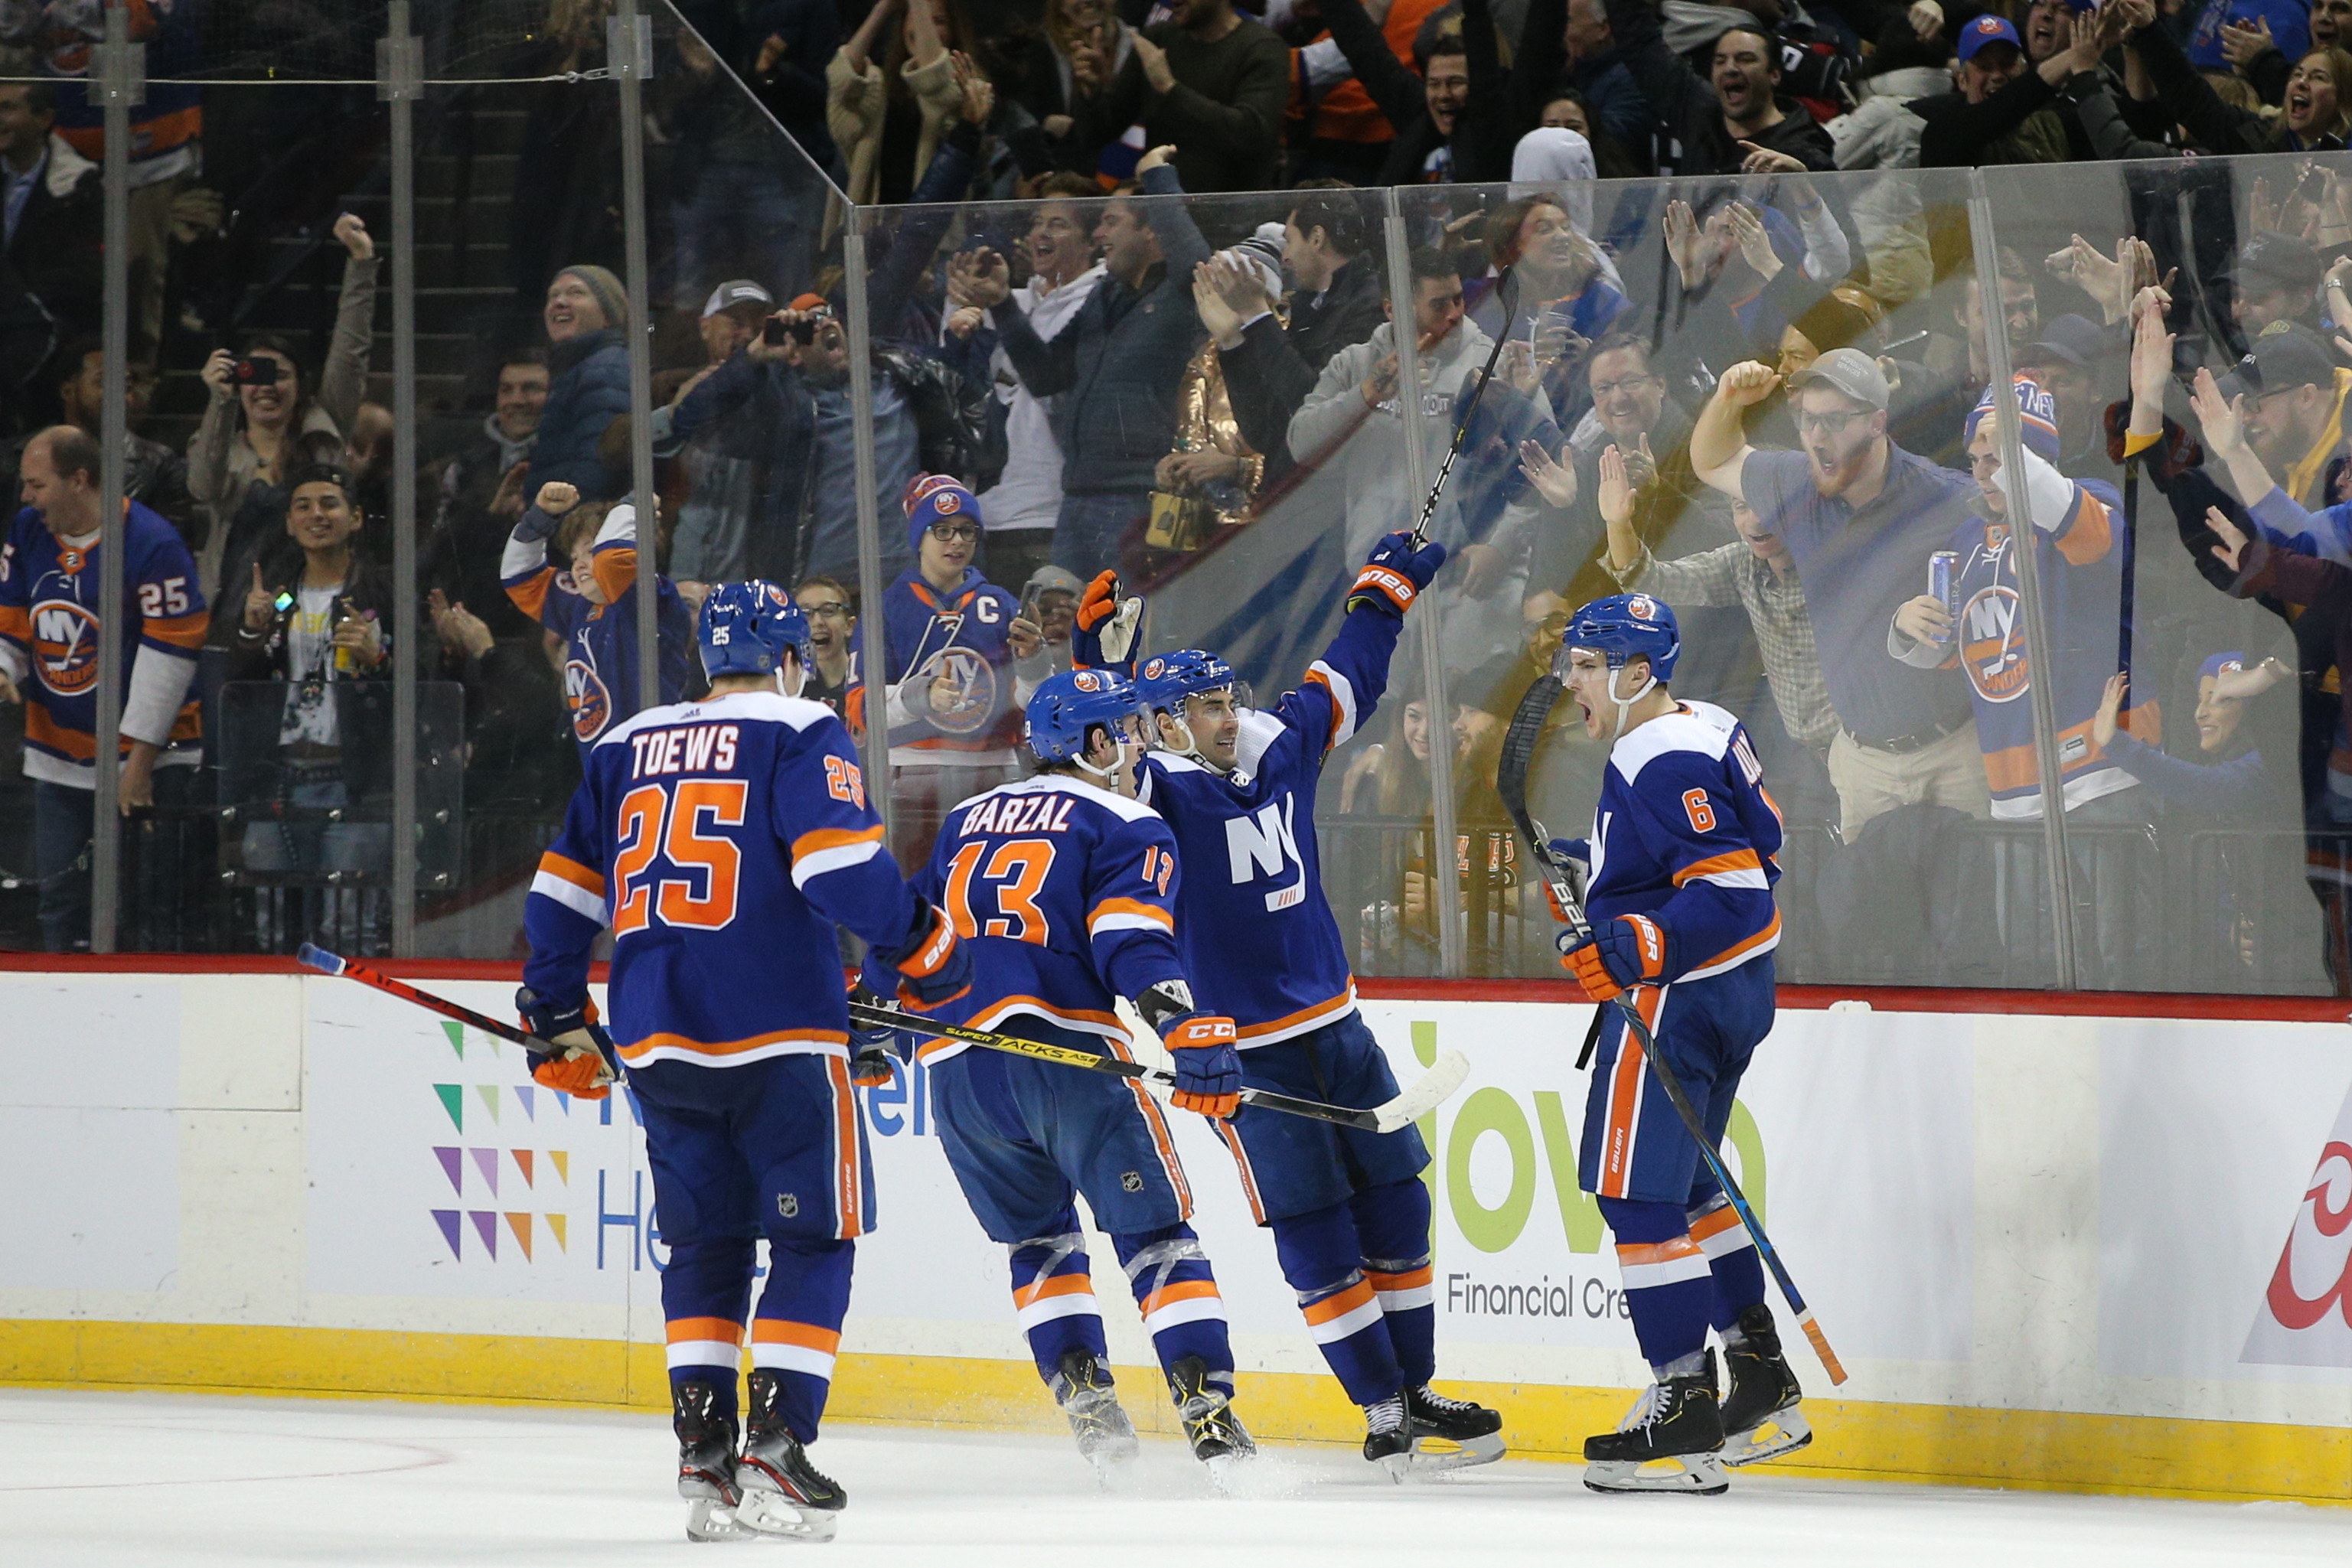 Feb 11, 2020; Brooklyn, New York, USA; New York Islanders defenseman Ryan Pulock (6) celebrates his game winning goal against the Philadelphia Flyers with teammates during the third period at Barclays Center. Mandatory Credit: Brad Penner-USA TODAY Sports